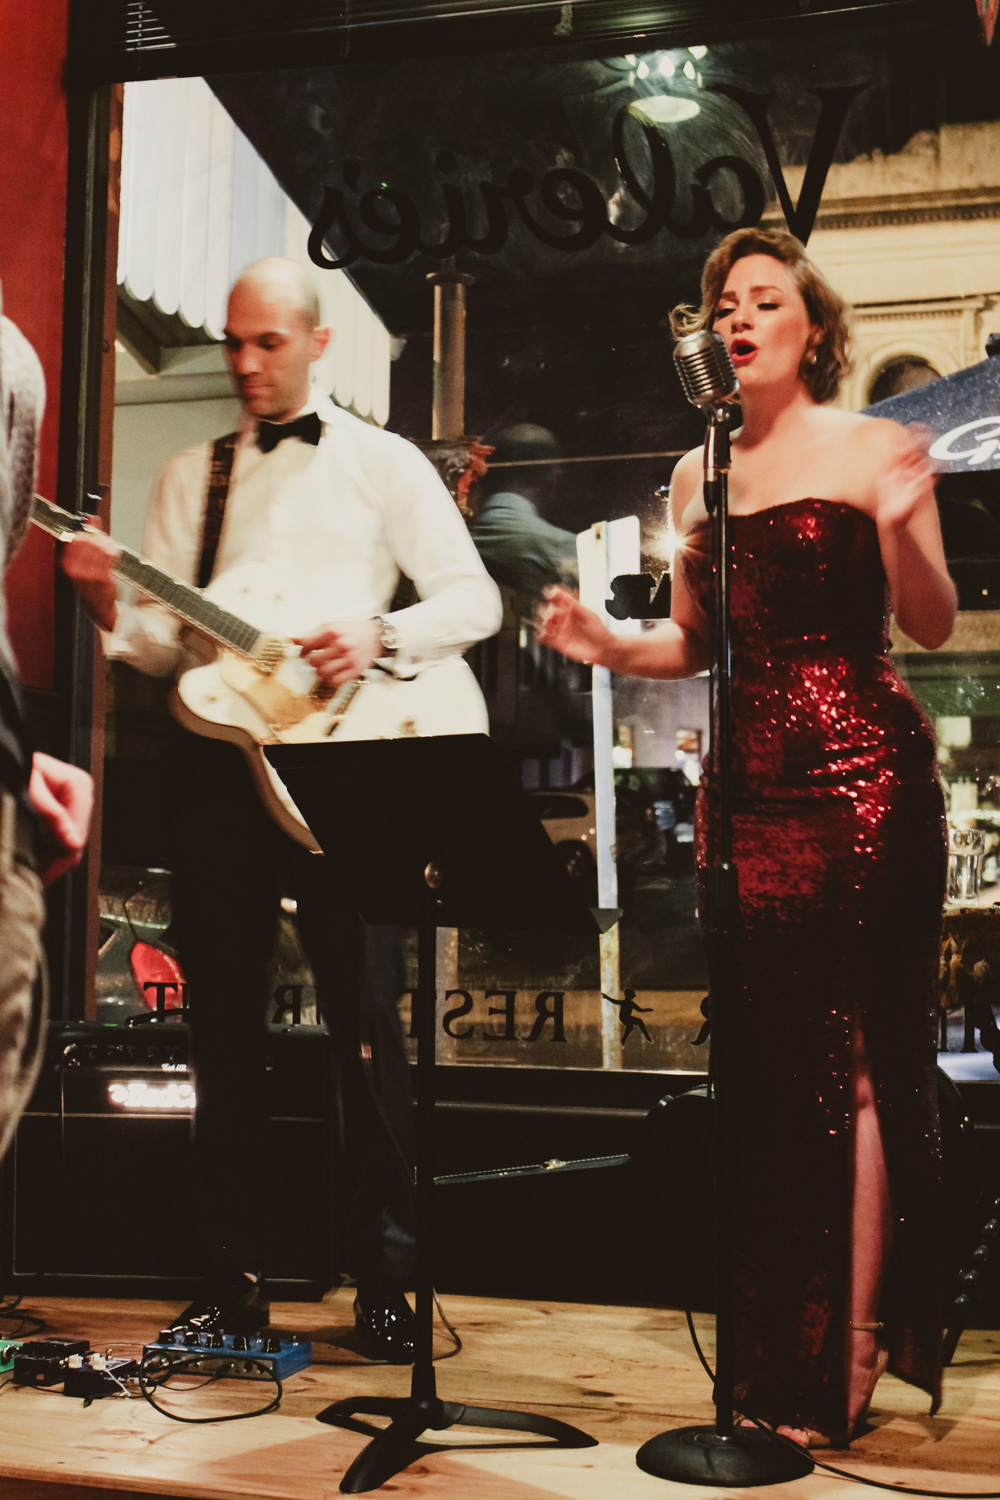 @findingfemme in ASOS red sequin maxi dress performing in Liana and the Petite Mort in Ballarat